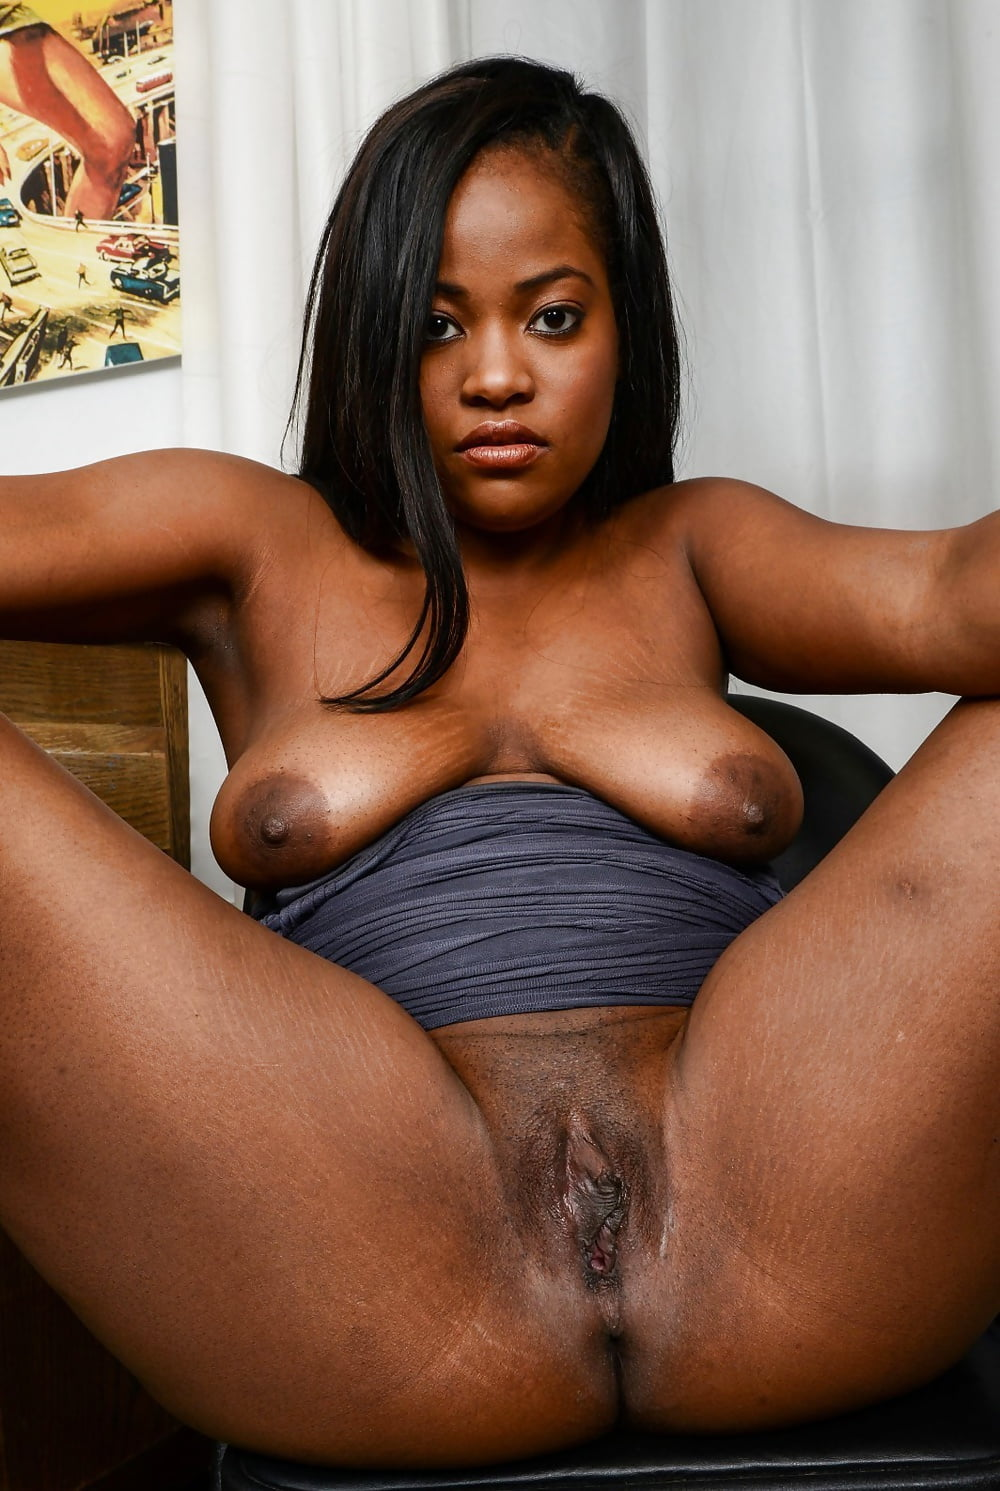 Raven symone nude photos with her girlfriend